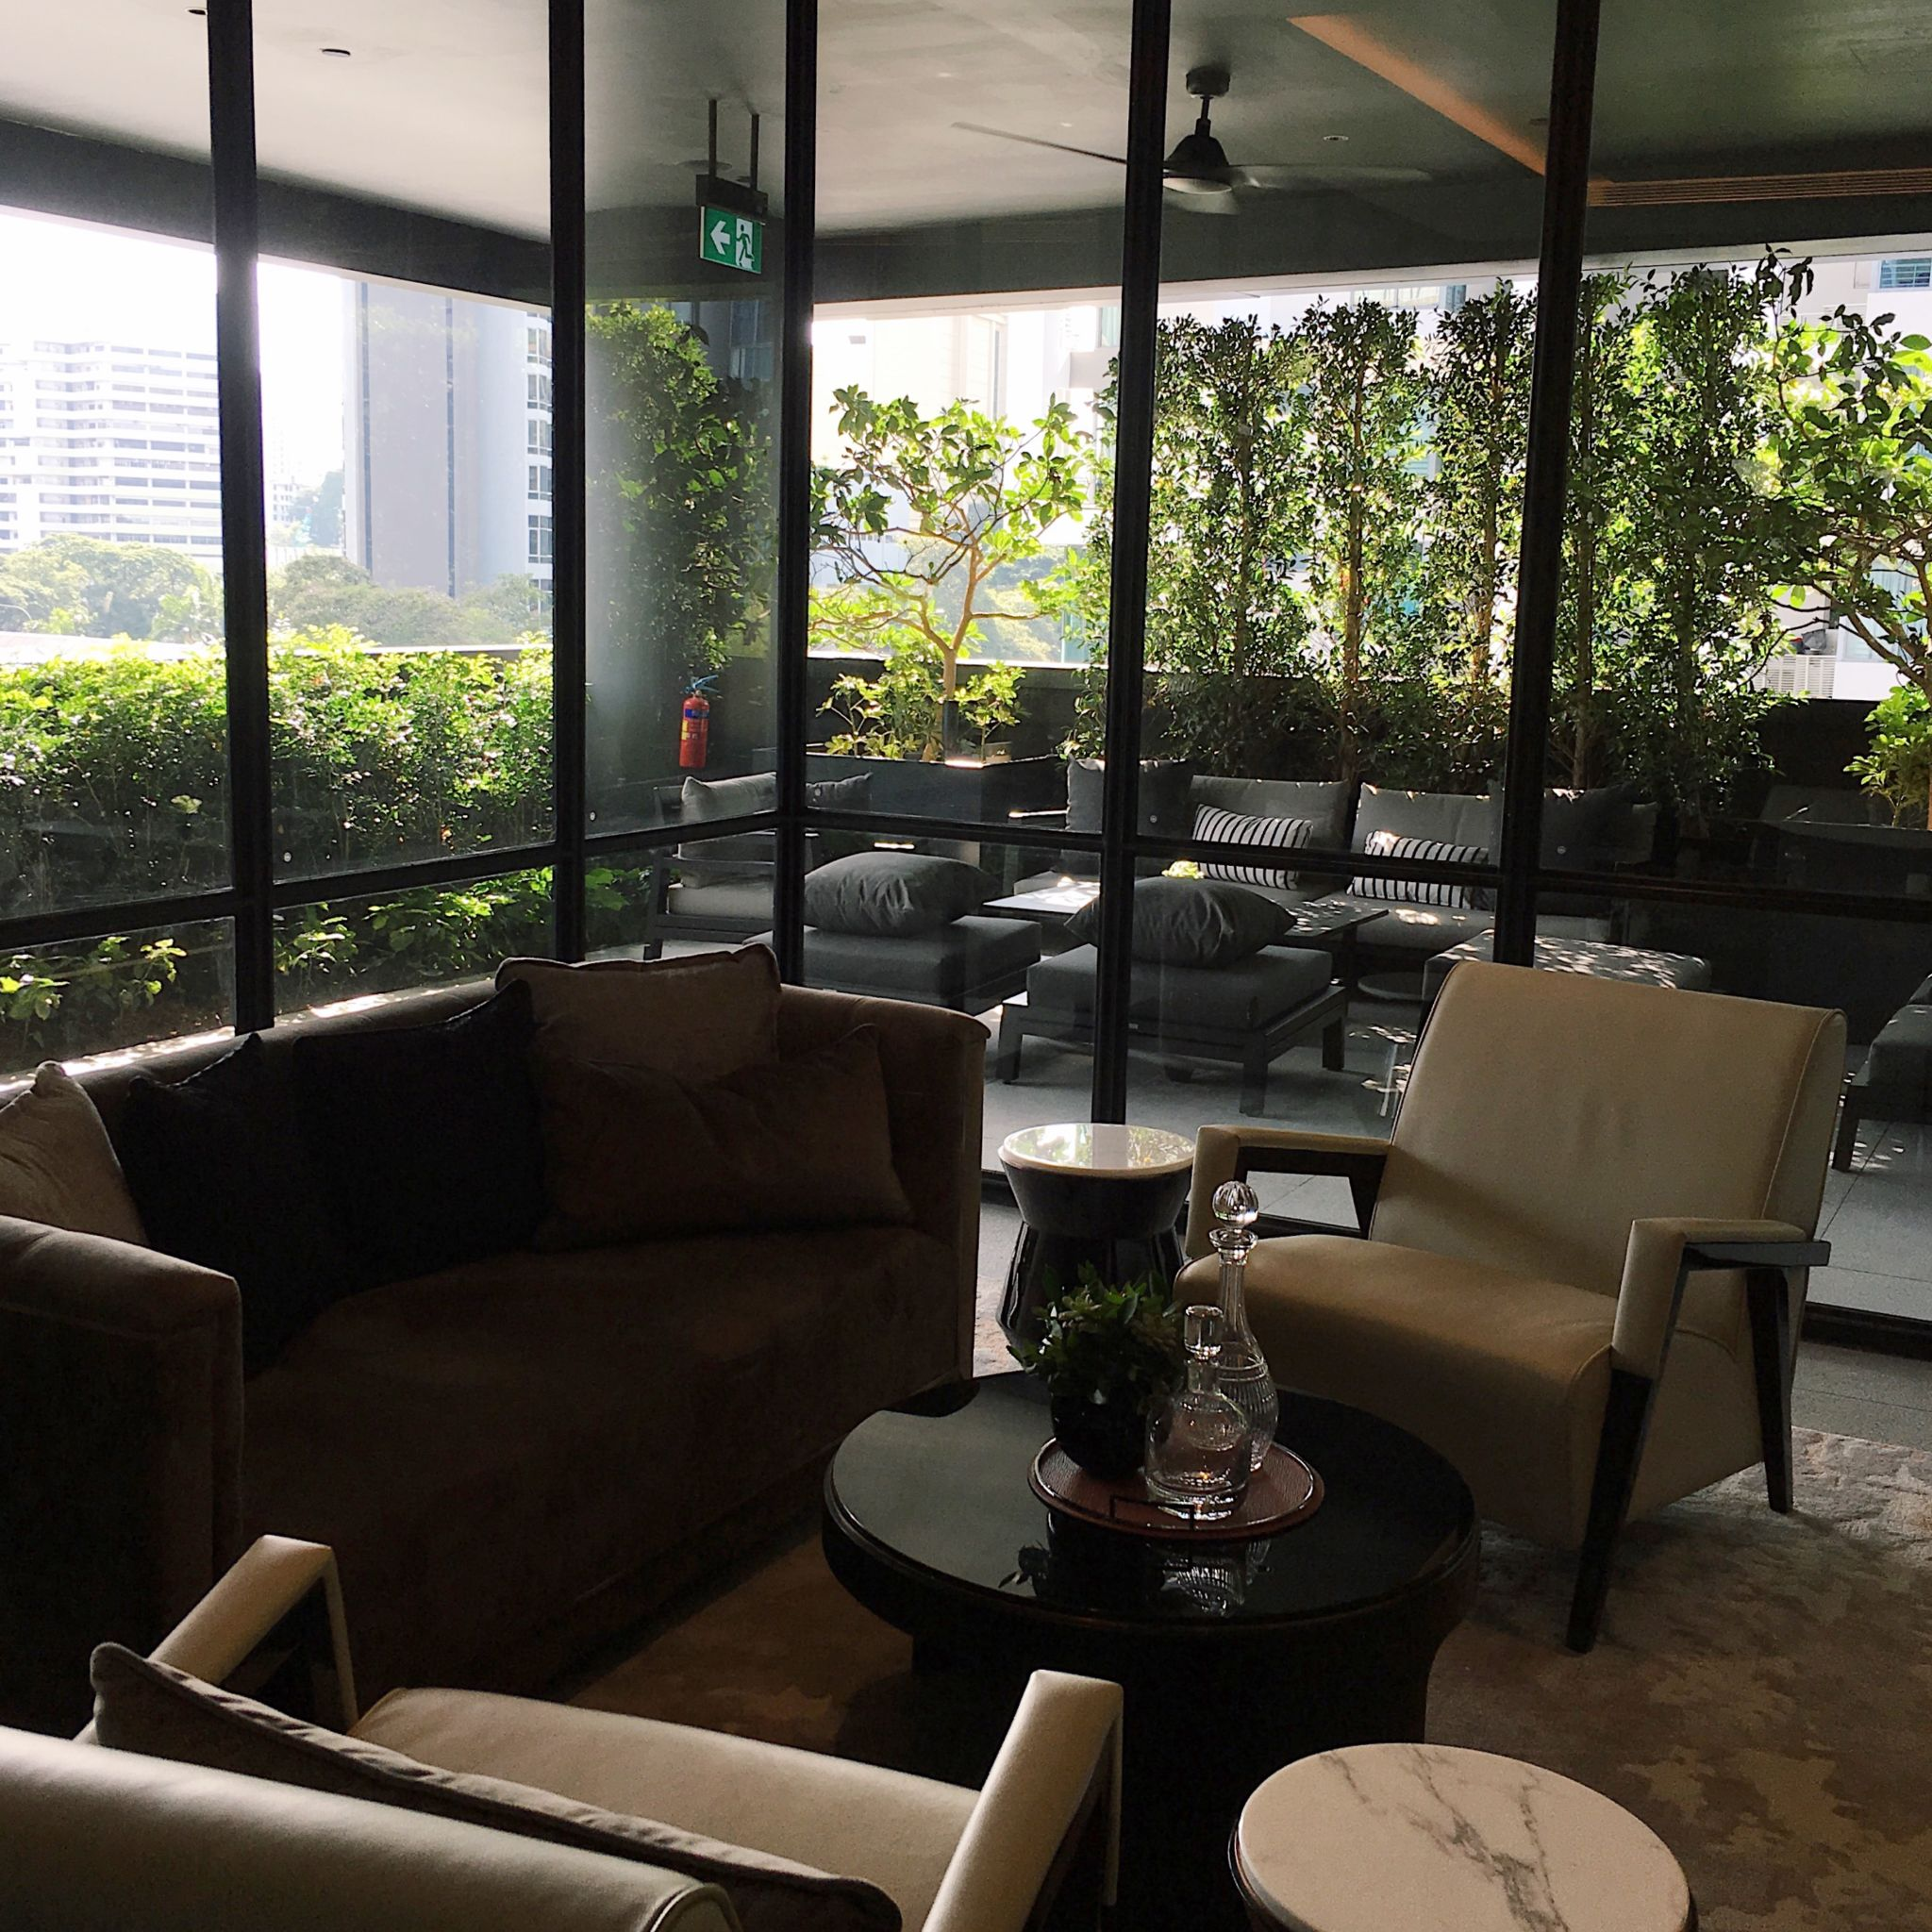 Club InterContinental Lounge - nterContinental Singapore Robertson Quay